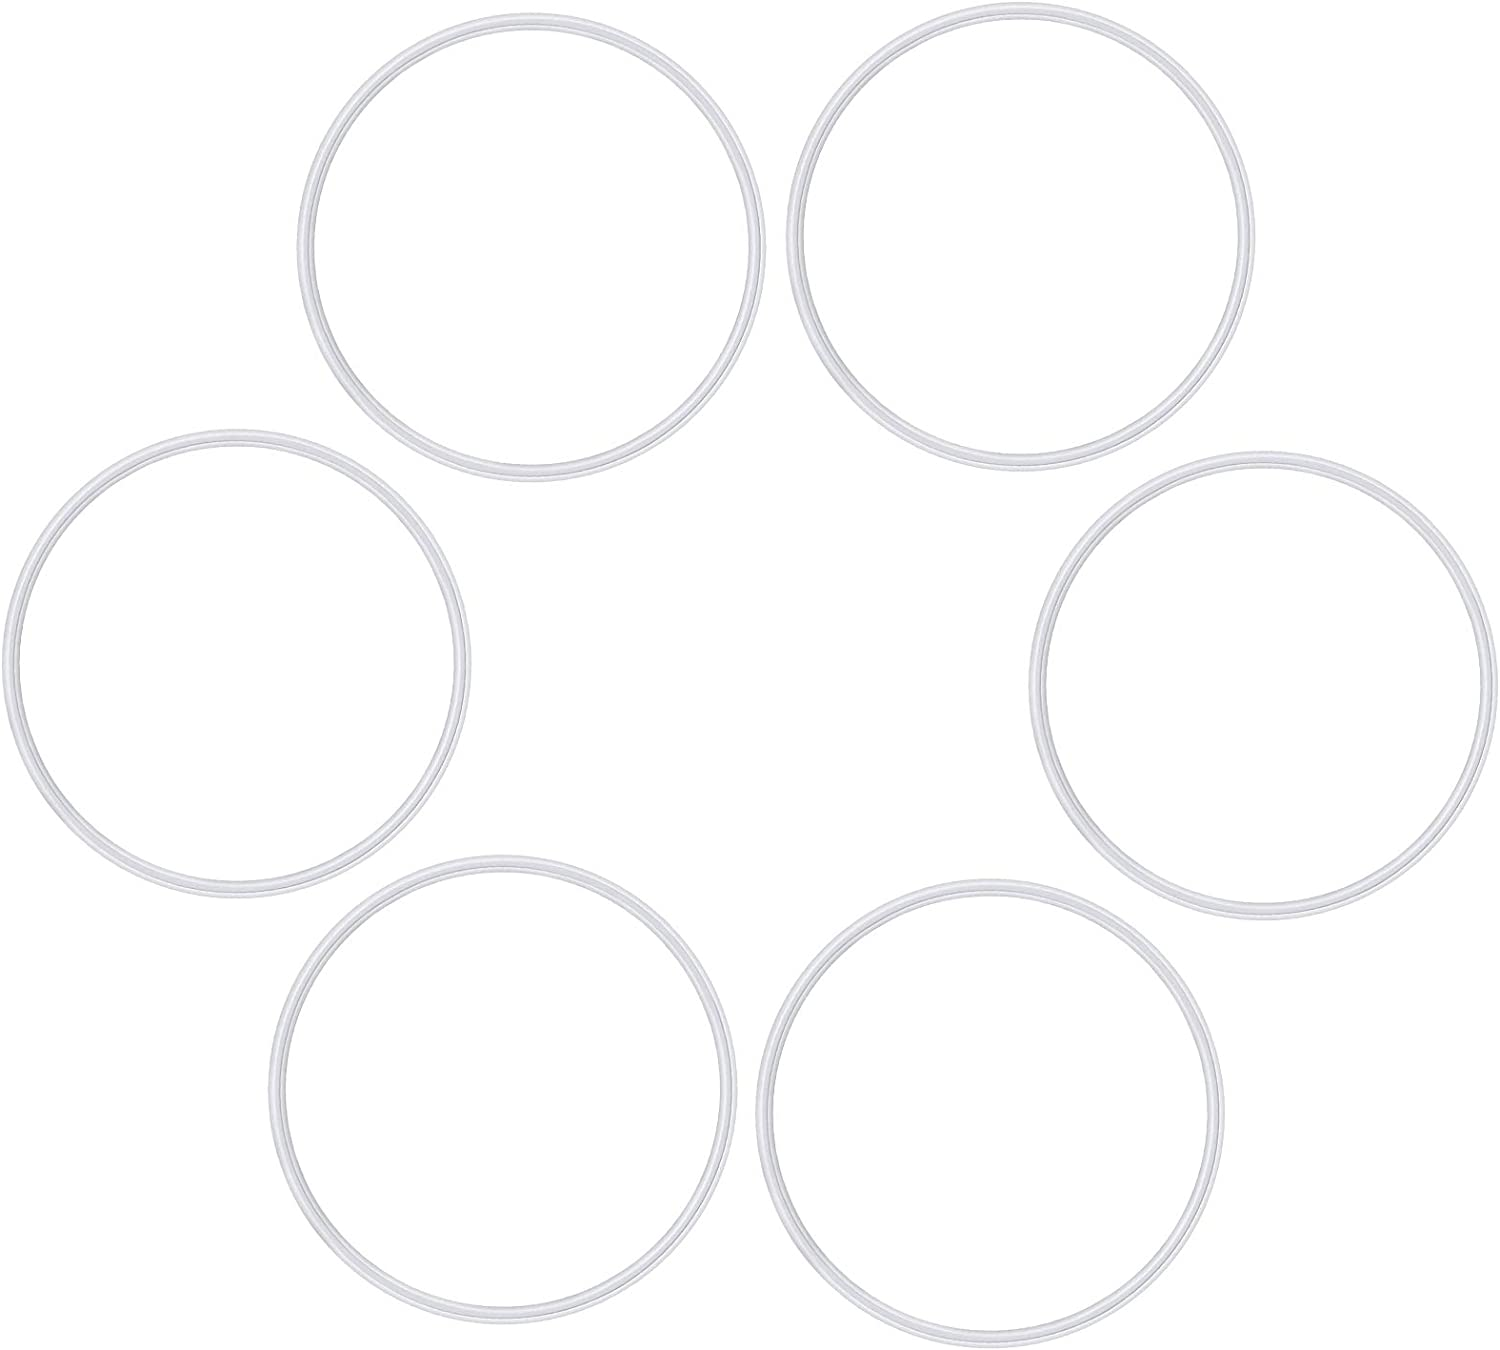 Rubber Gaskets, 6 Pack Replacement Seal White O-ring Gaskets Compatible with Magic Bullet 250W Cross or Flat Blade, Blender Replacement Parts